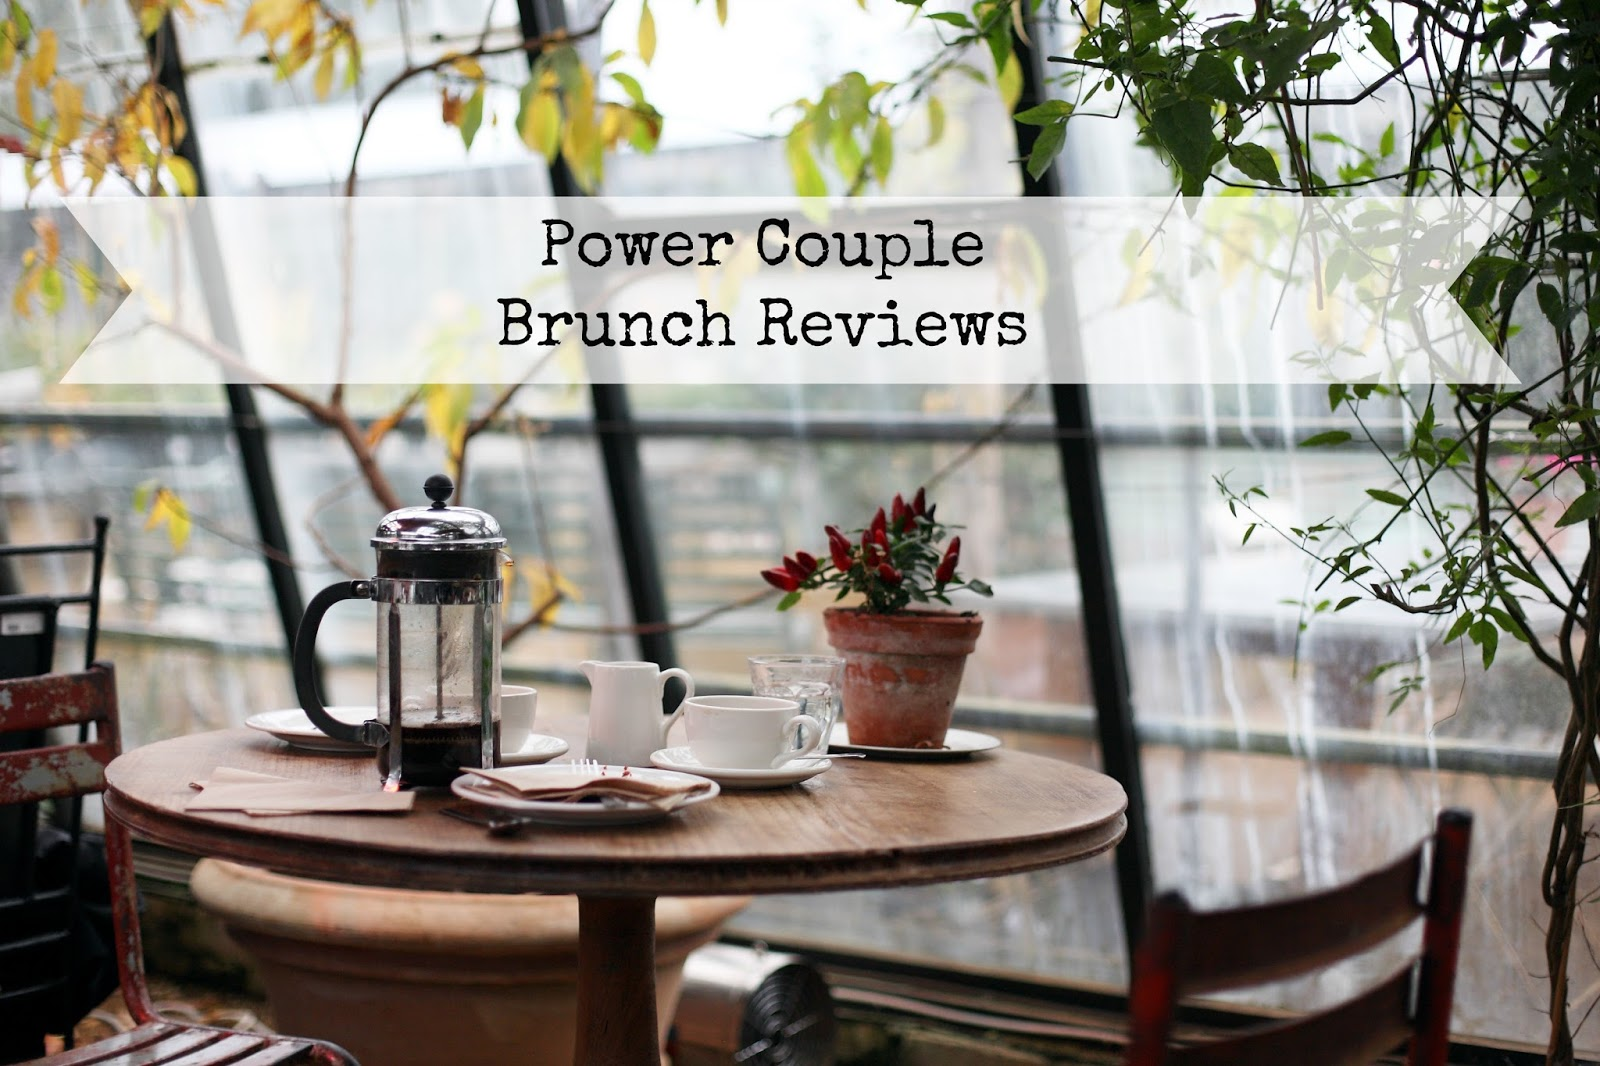 Brunch Review